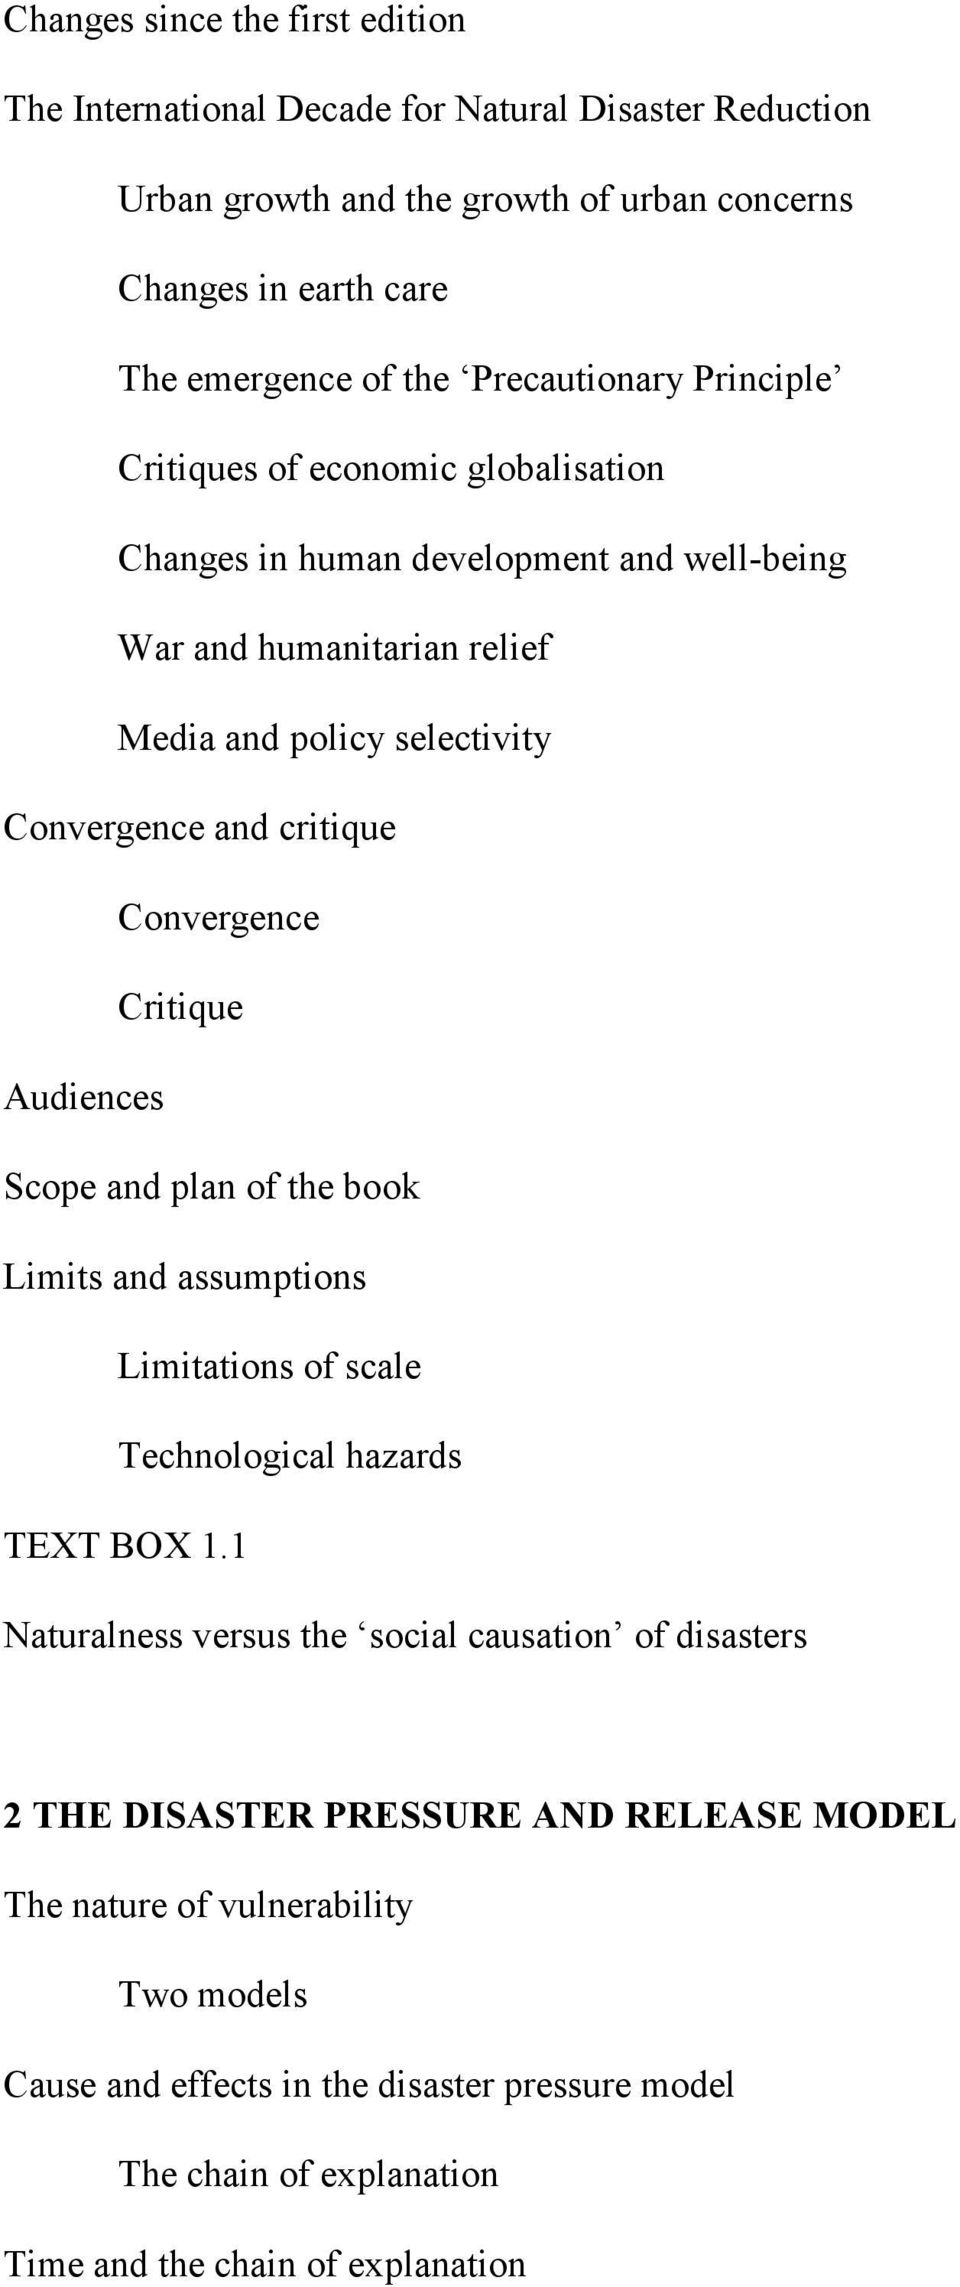 Convergence Critique Audiences Scope and plan of the book Limits and assumptions Limitations of scale Technological hazards TEXT BOX 1.